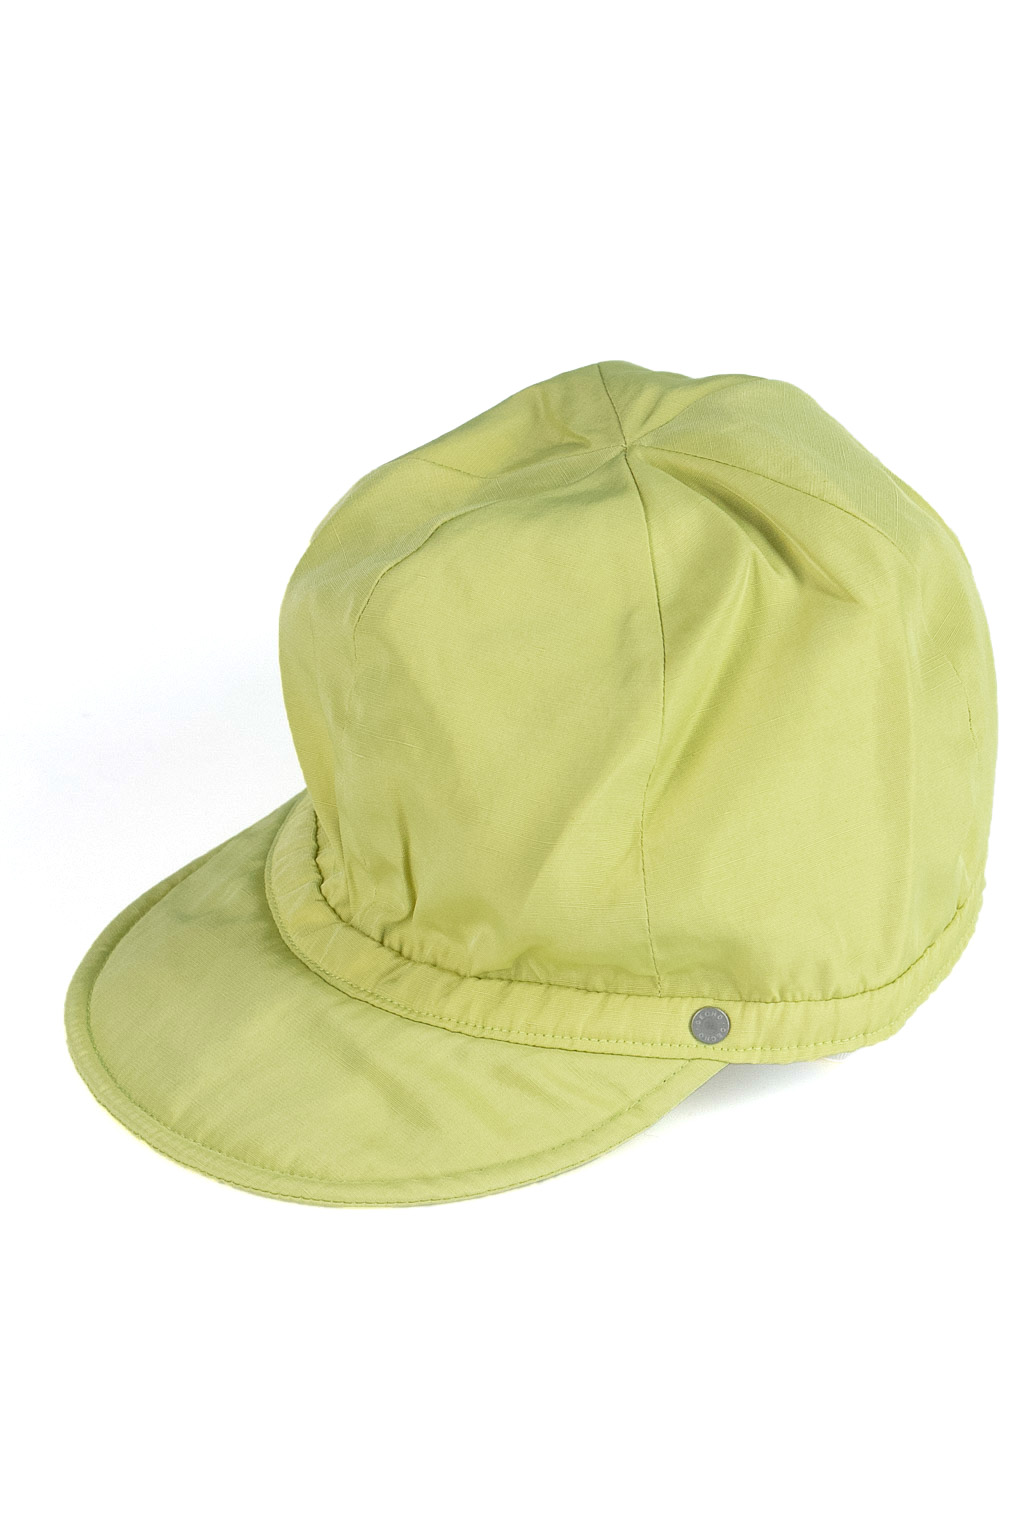 Decho Kome Cap - in 2 Color Choices